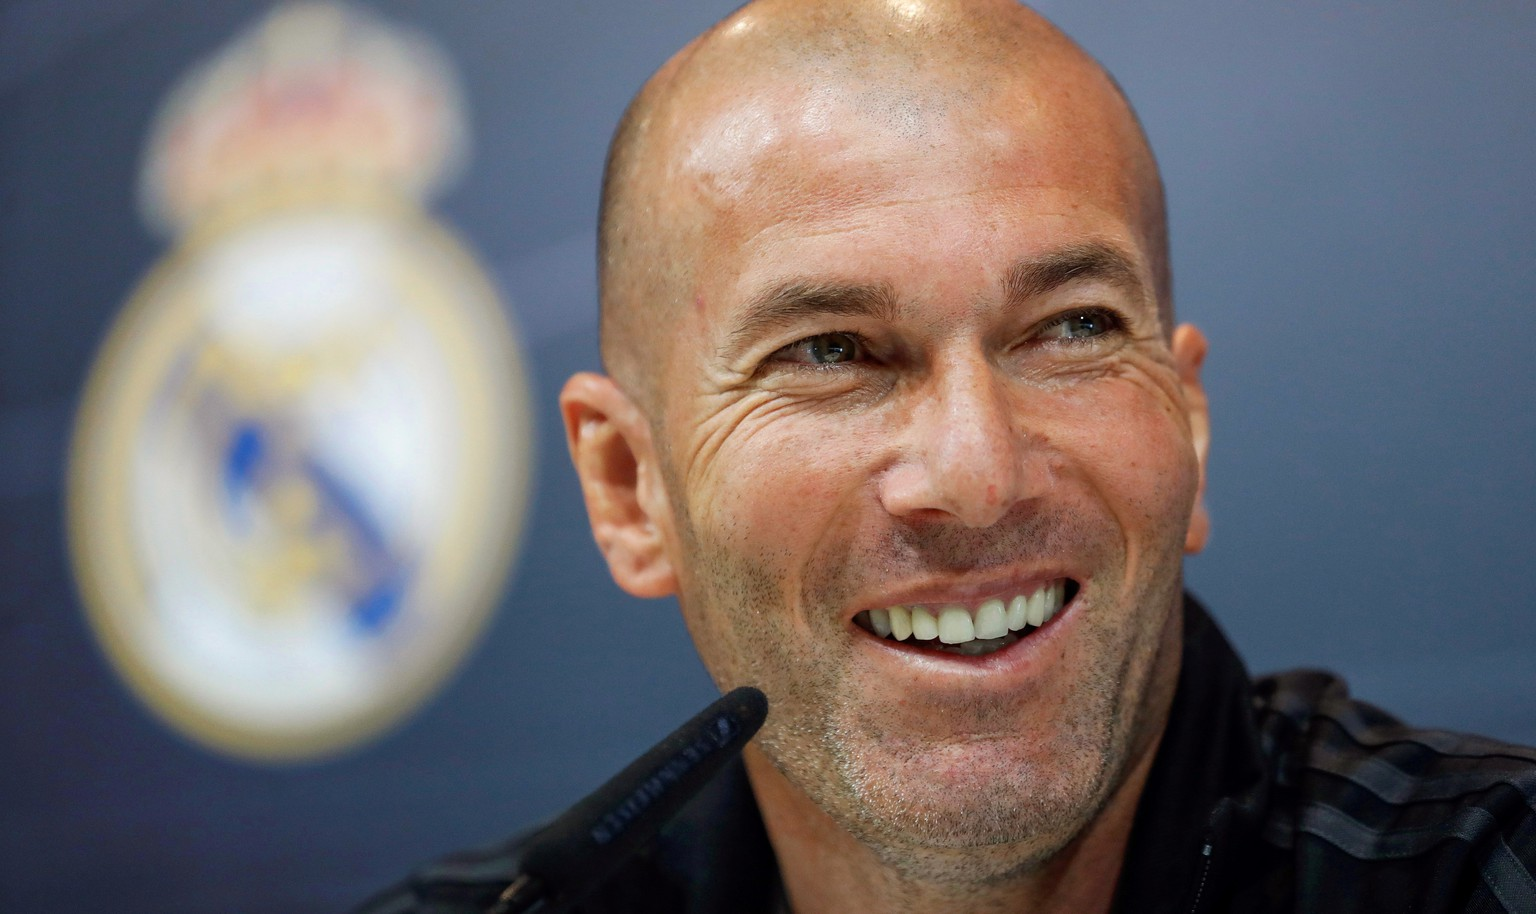 epa07429194 (FILE) - Real Madrid's head coach Zinedine Zidane attends a press conference in Madrid, Spain, 11 May 2018 (re-issued 11 March 2019). French head coach Zinedine Zidane is set to return to Real Madrid after 278 days to replace current coach Santiago Solari, Spanish TV channel LaSexta cclaimed on 11 March 2019.  EPA/EMILIO NARANJO